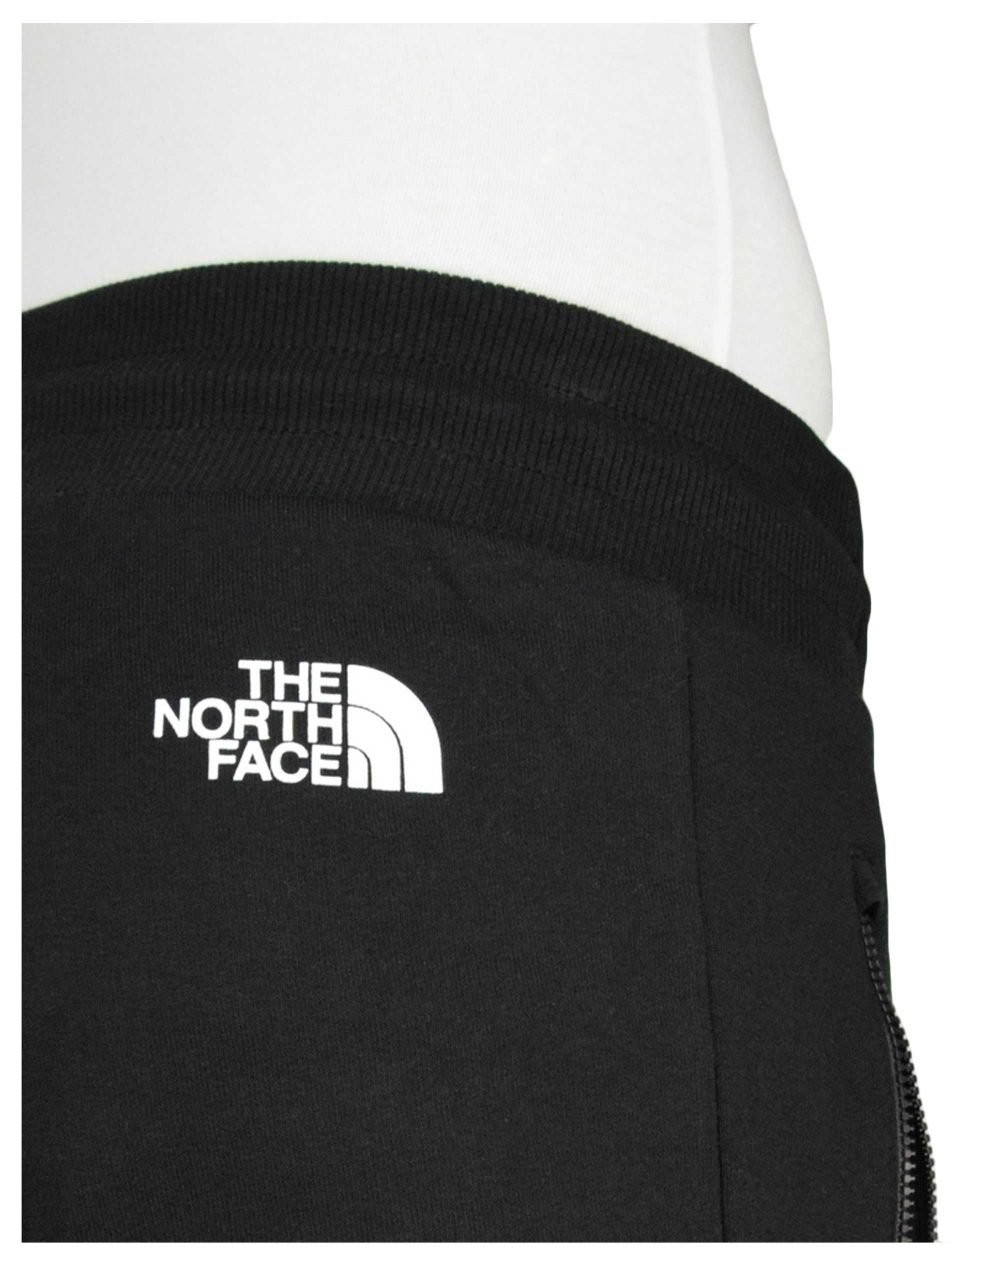 The North Face Hmlyn Pant (NF0A4SWOJK31) Black